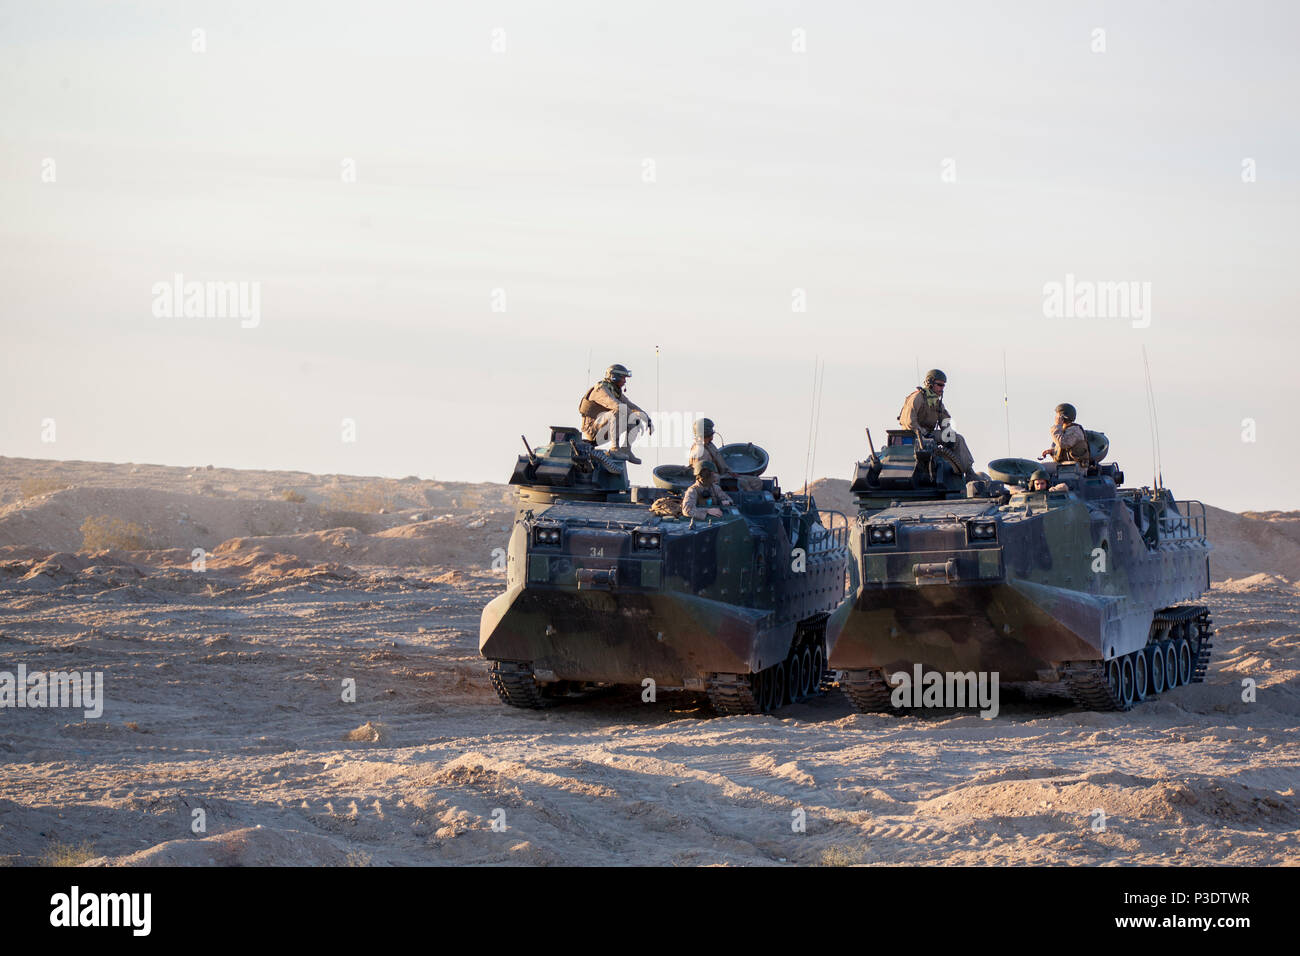 Marines with Delta Company, 4th Assault Amphibious Vehicle Battalion, 4th Marine Division, stage their assault amphibious vehicles for an obstacle clearing detachment practical application during Integrated Training Exercise 4-18, aboard Marine Corps Air Ground Combat Center Twentynine Palms, California, June 12, 2018. The OCD training was conducted to prepare Marines for the execution of a live-fire combined arms breach in which mechanized units will detonate a 1,000 pound mine clearing charge. Stock Photo